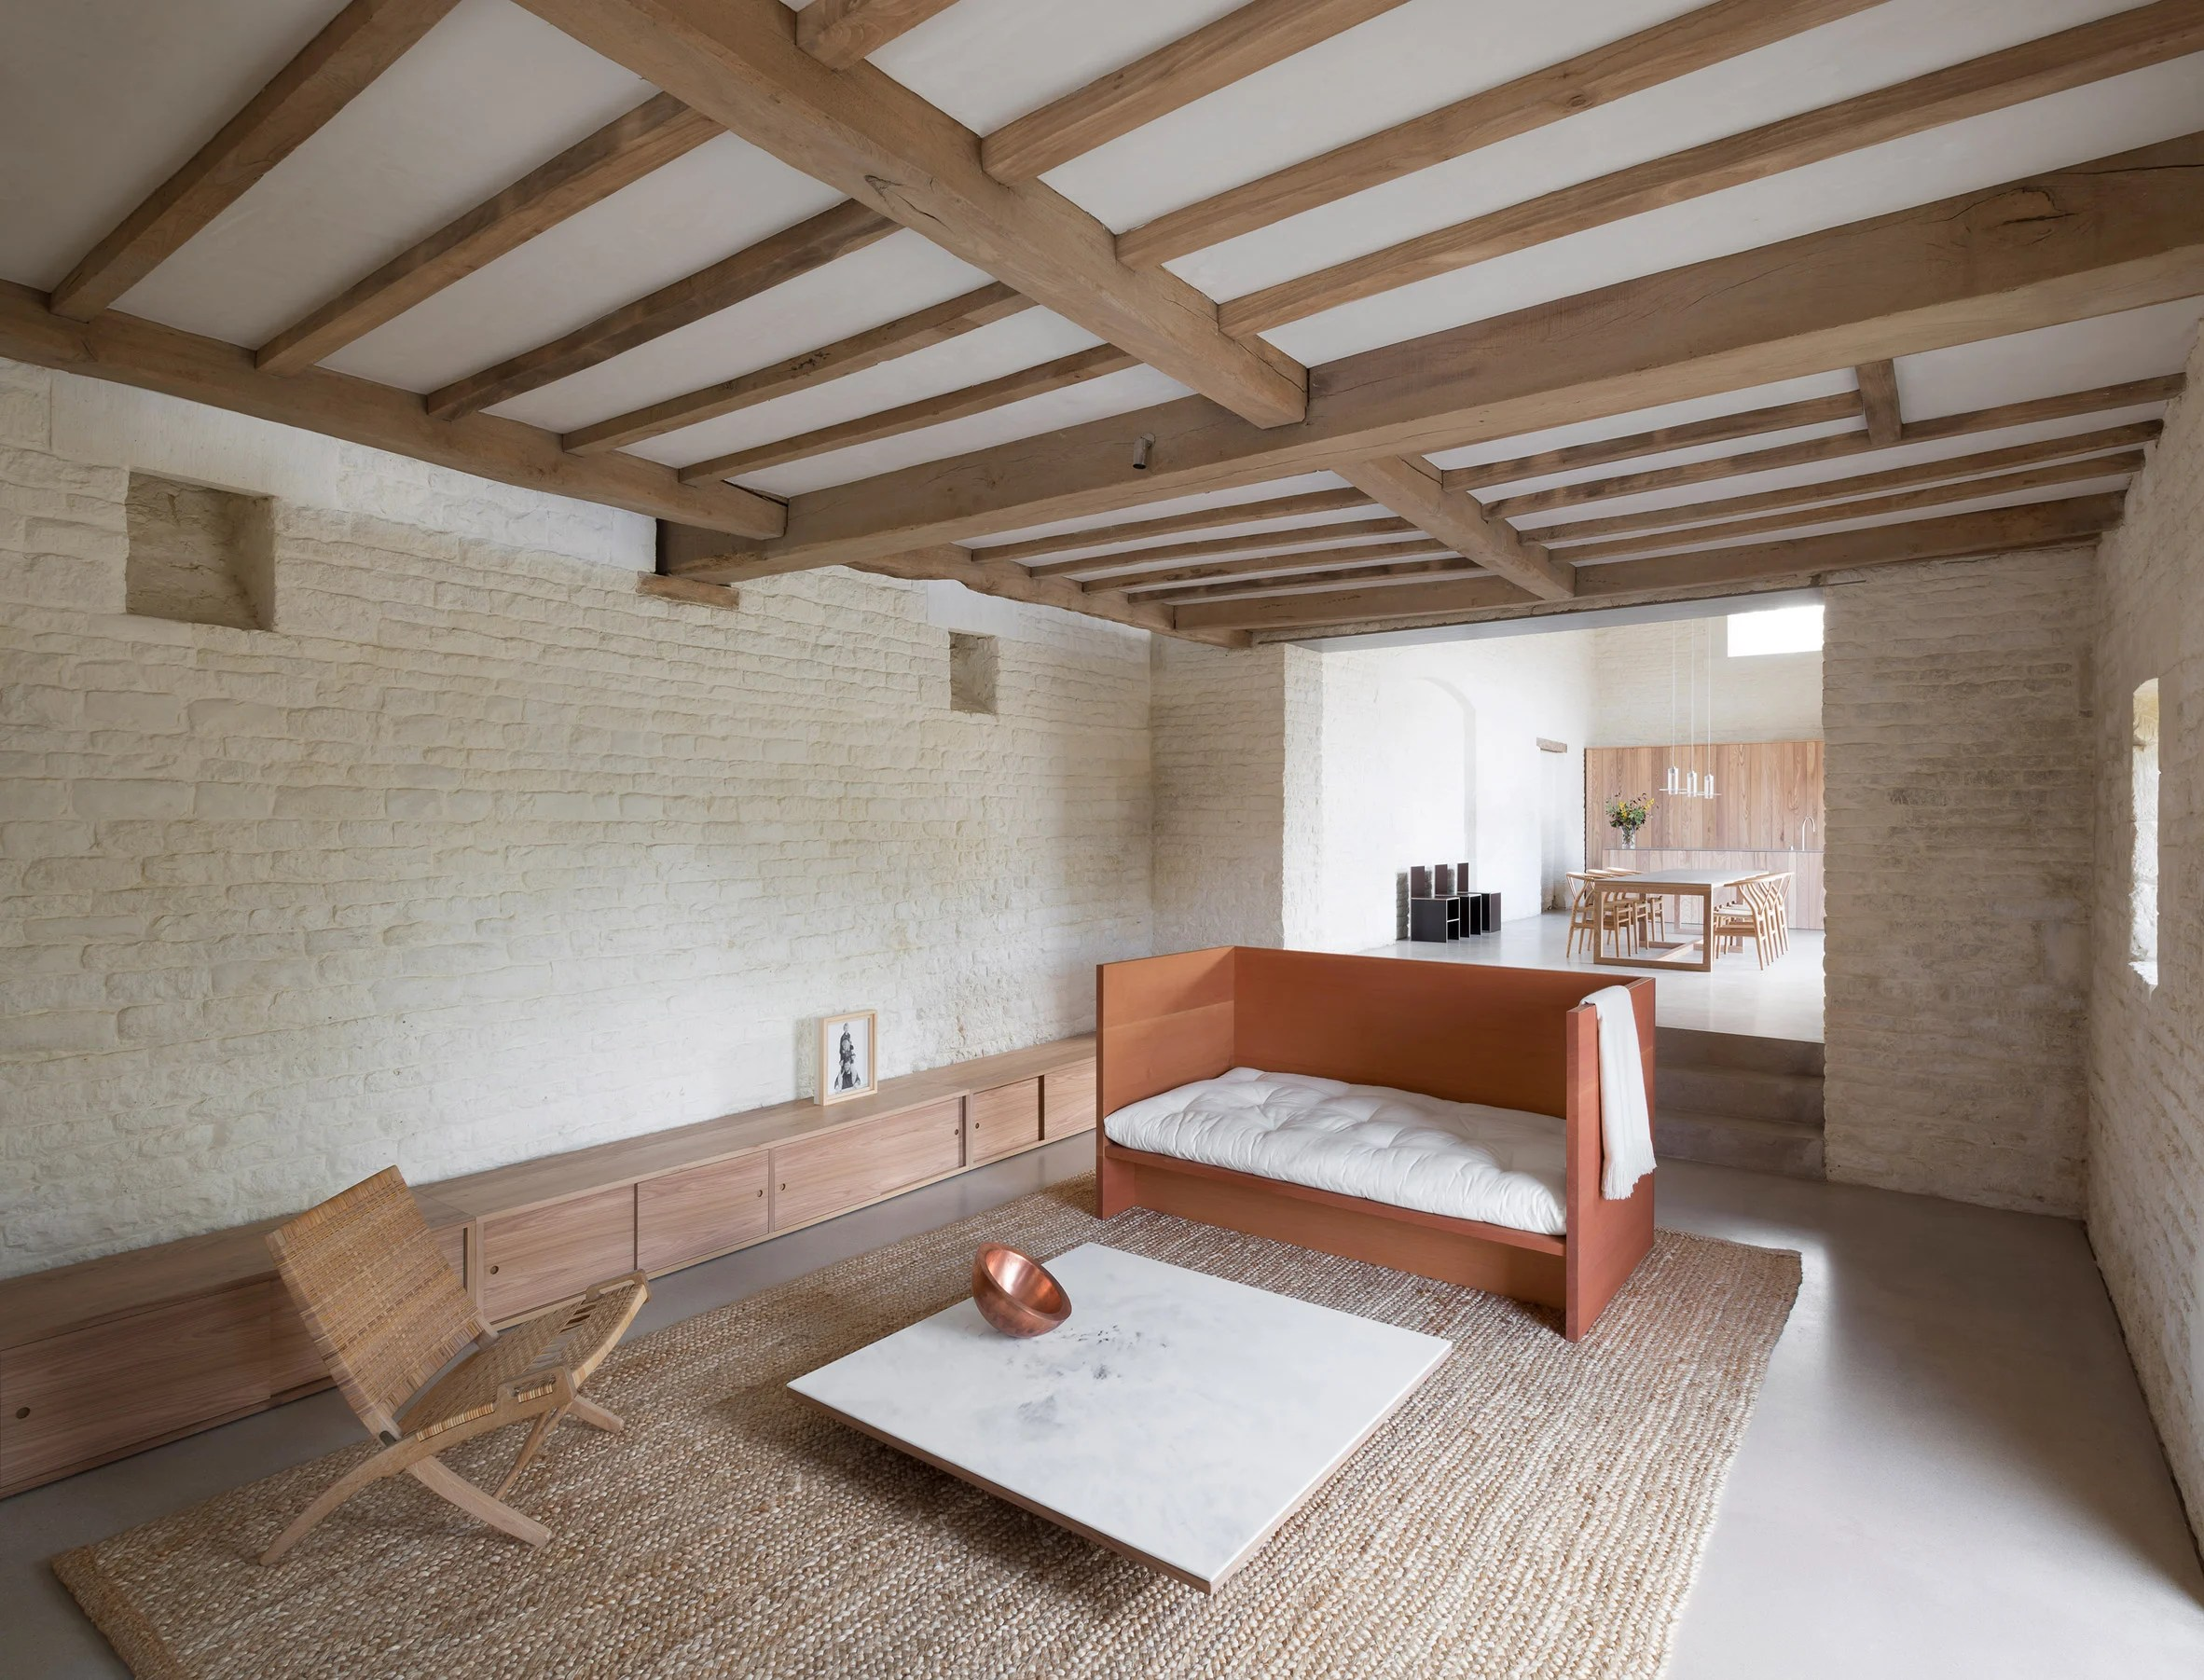 Home Farm by John Pawson